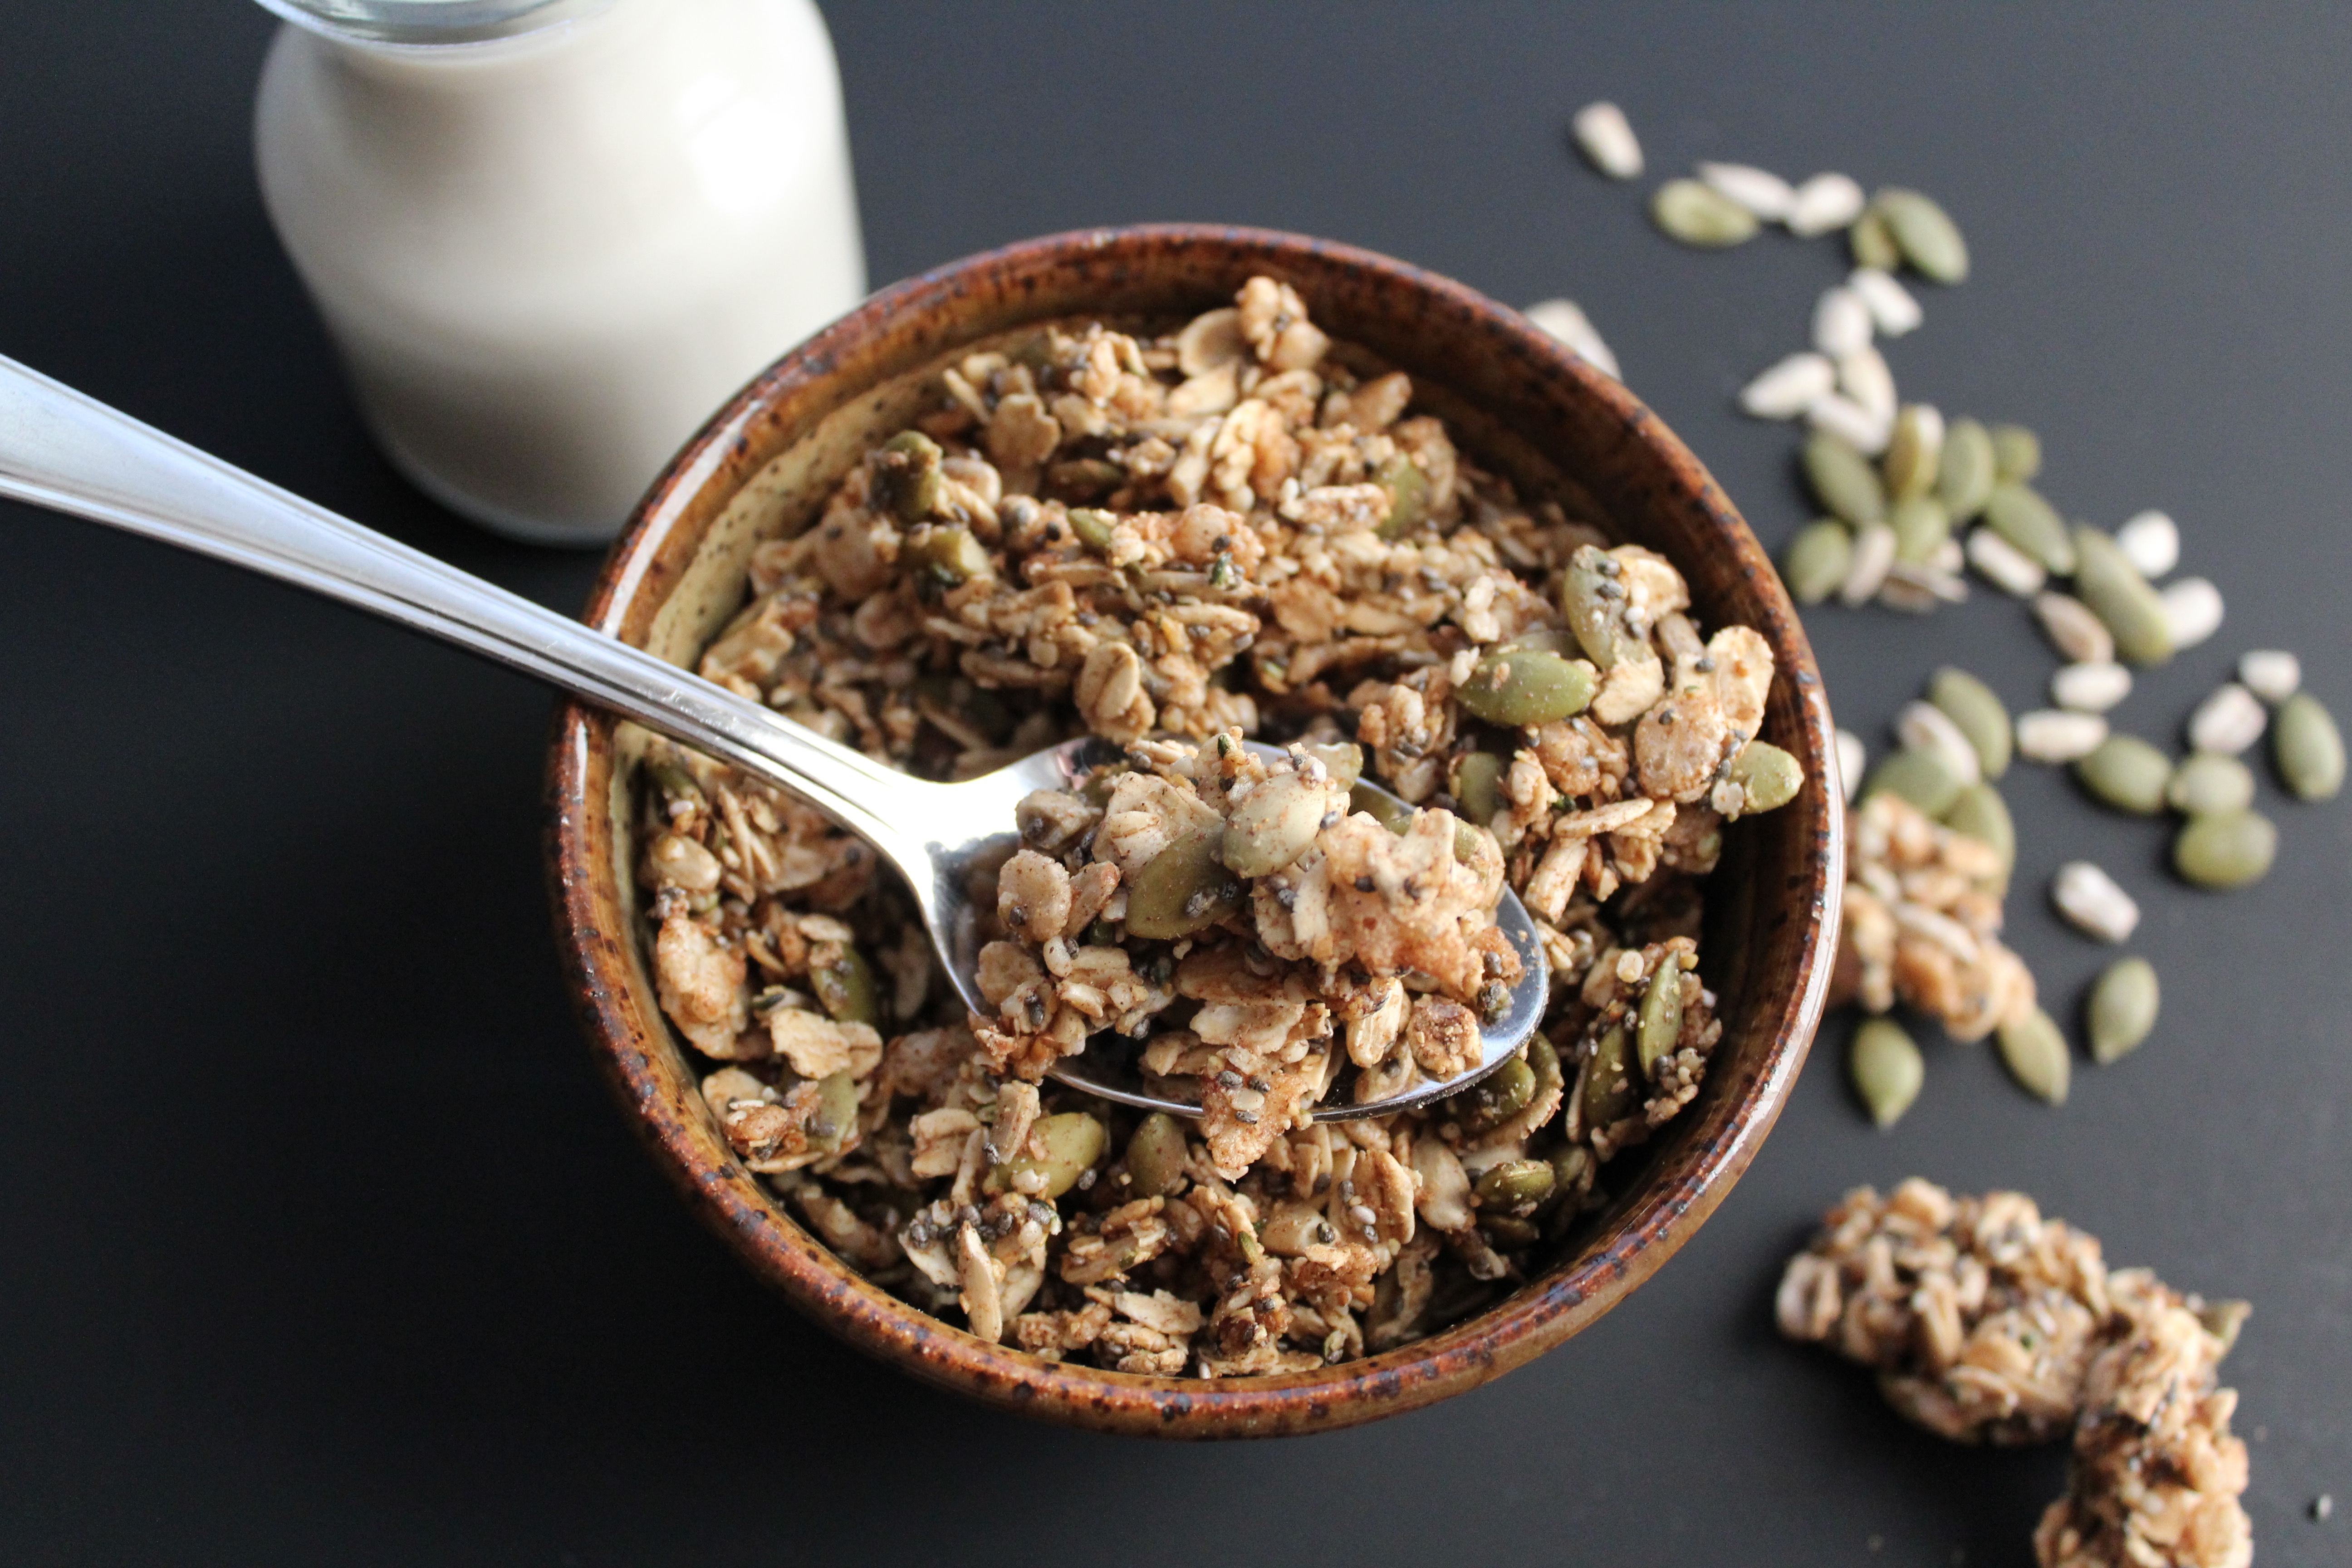 So many health benefits in this Chunky Super Seed Granola! Nut free! YUM!